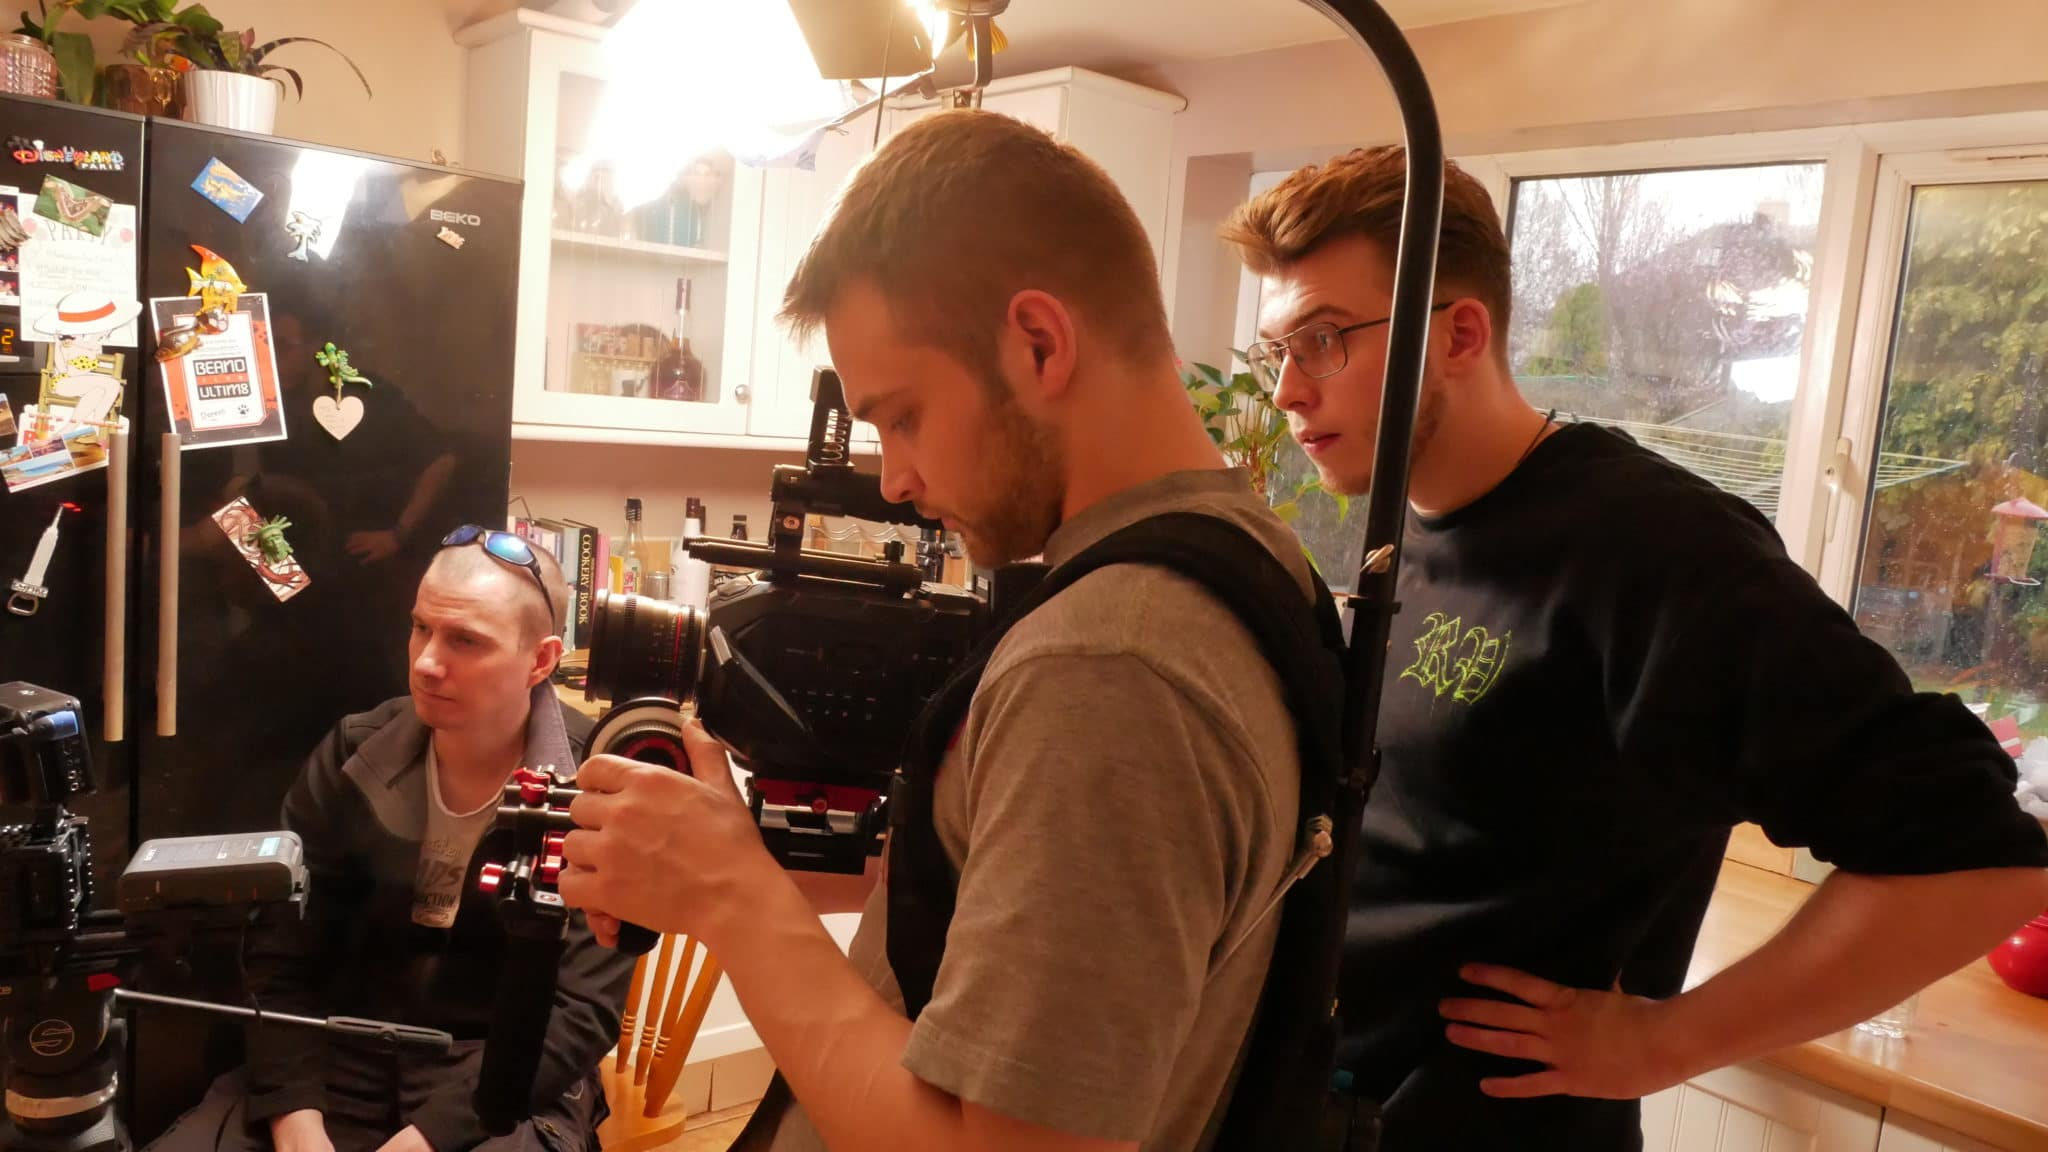 Daniel in the kitchen with a camera man filming